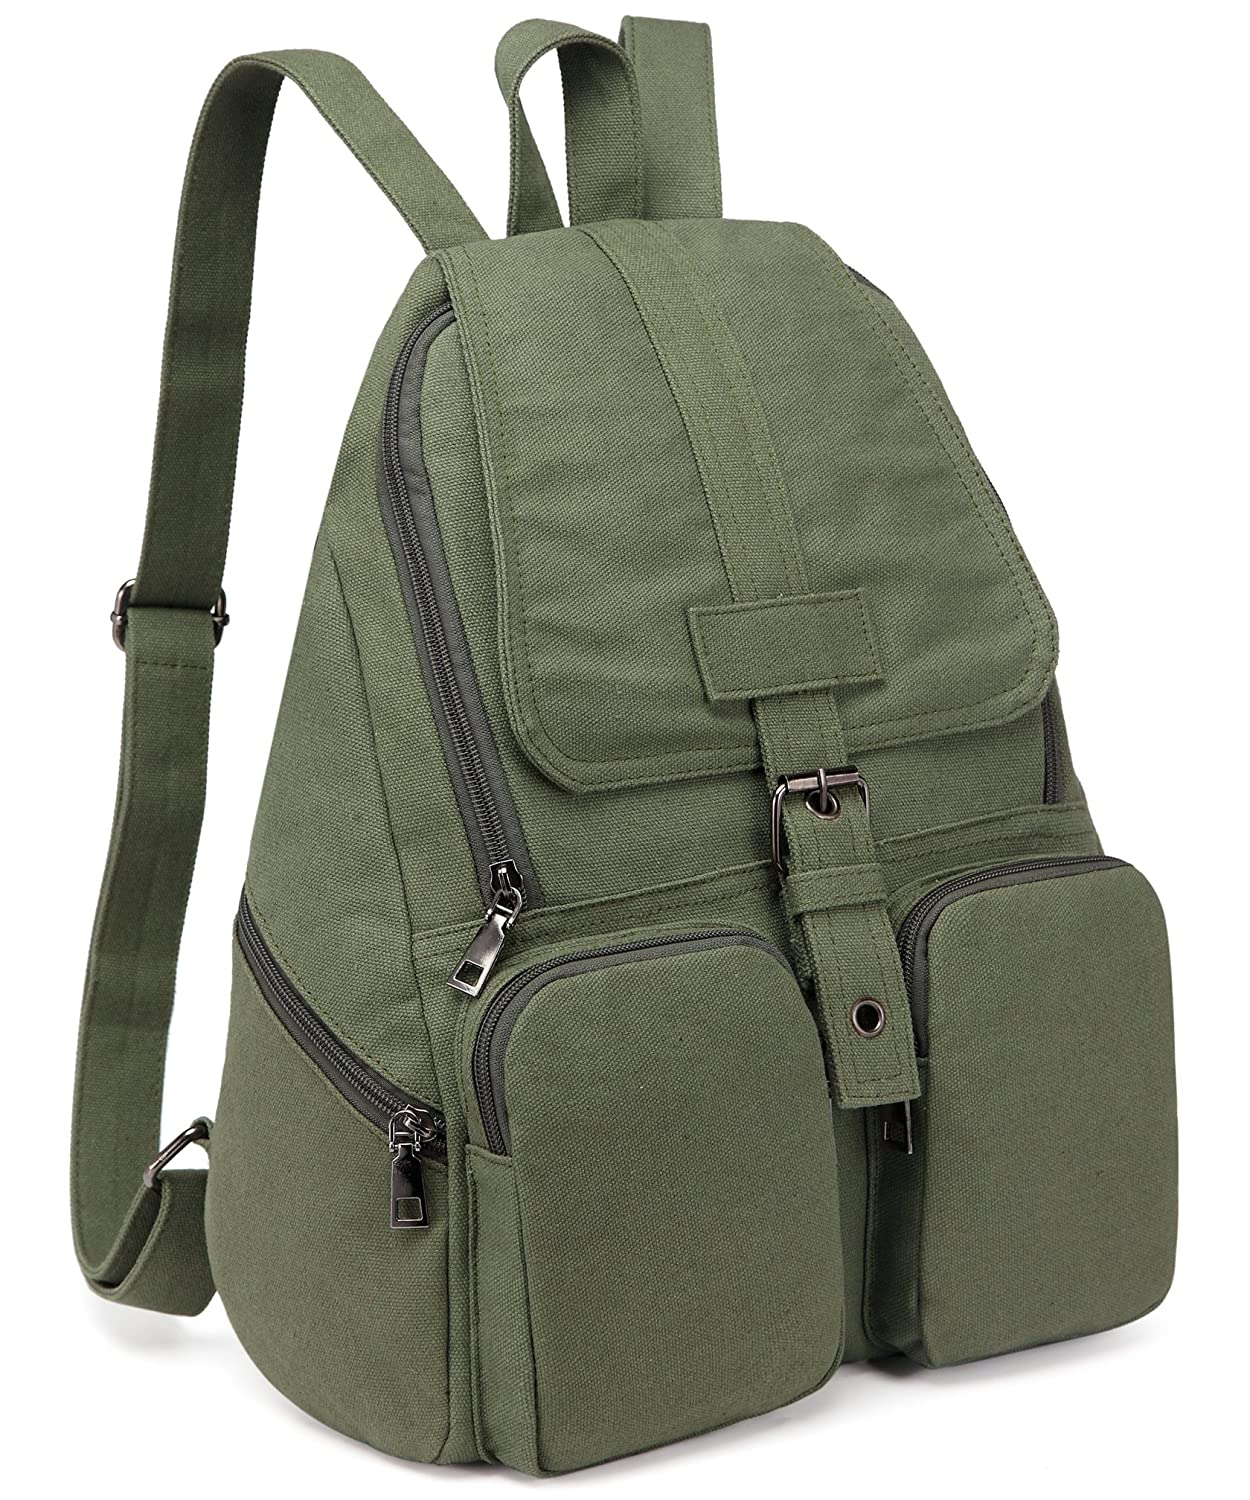 Canvas Preschool College Large Casual Backpack for Teens Boys Girls Men Women JS160712003